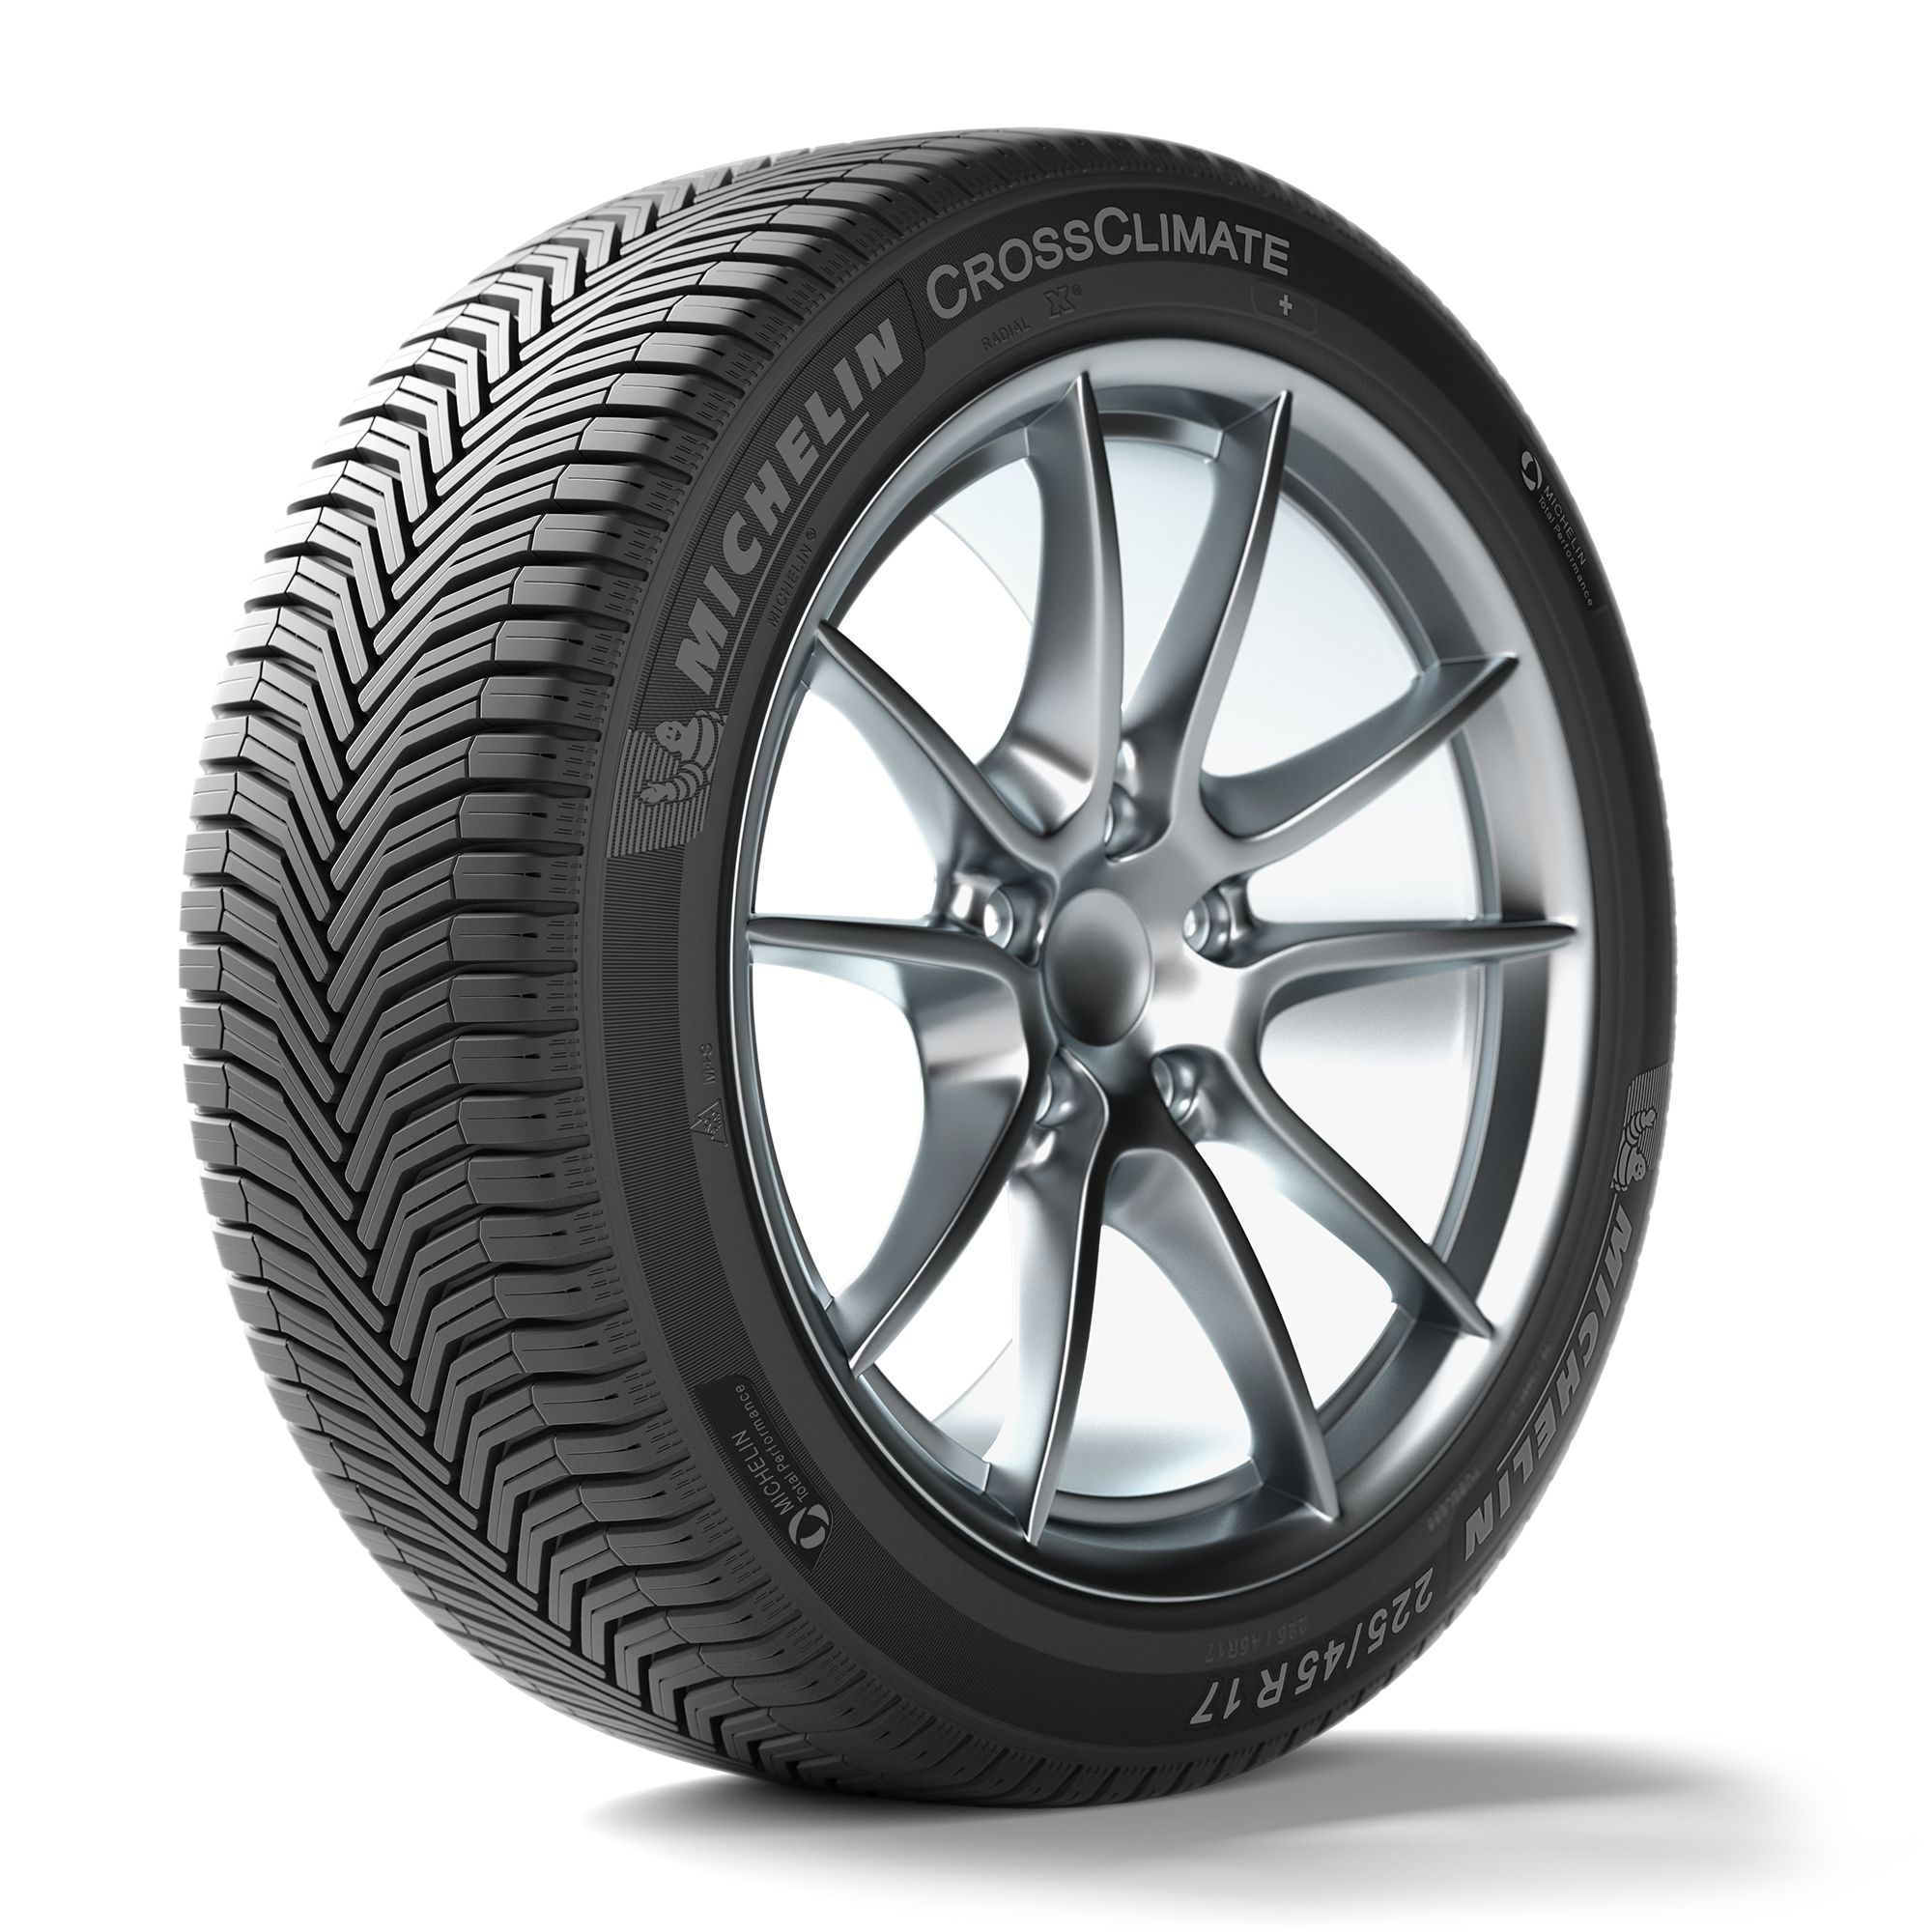 MICHELIN CROSSCLIMATE+ 195/65R15 95V